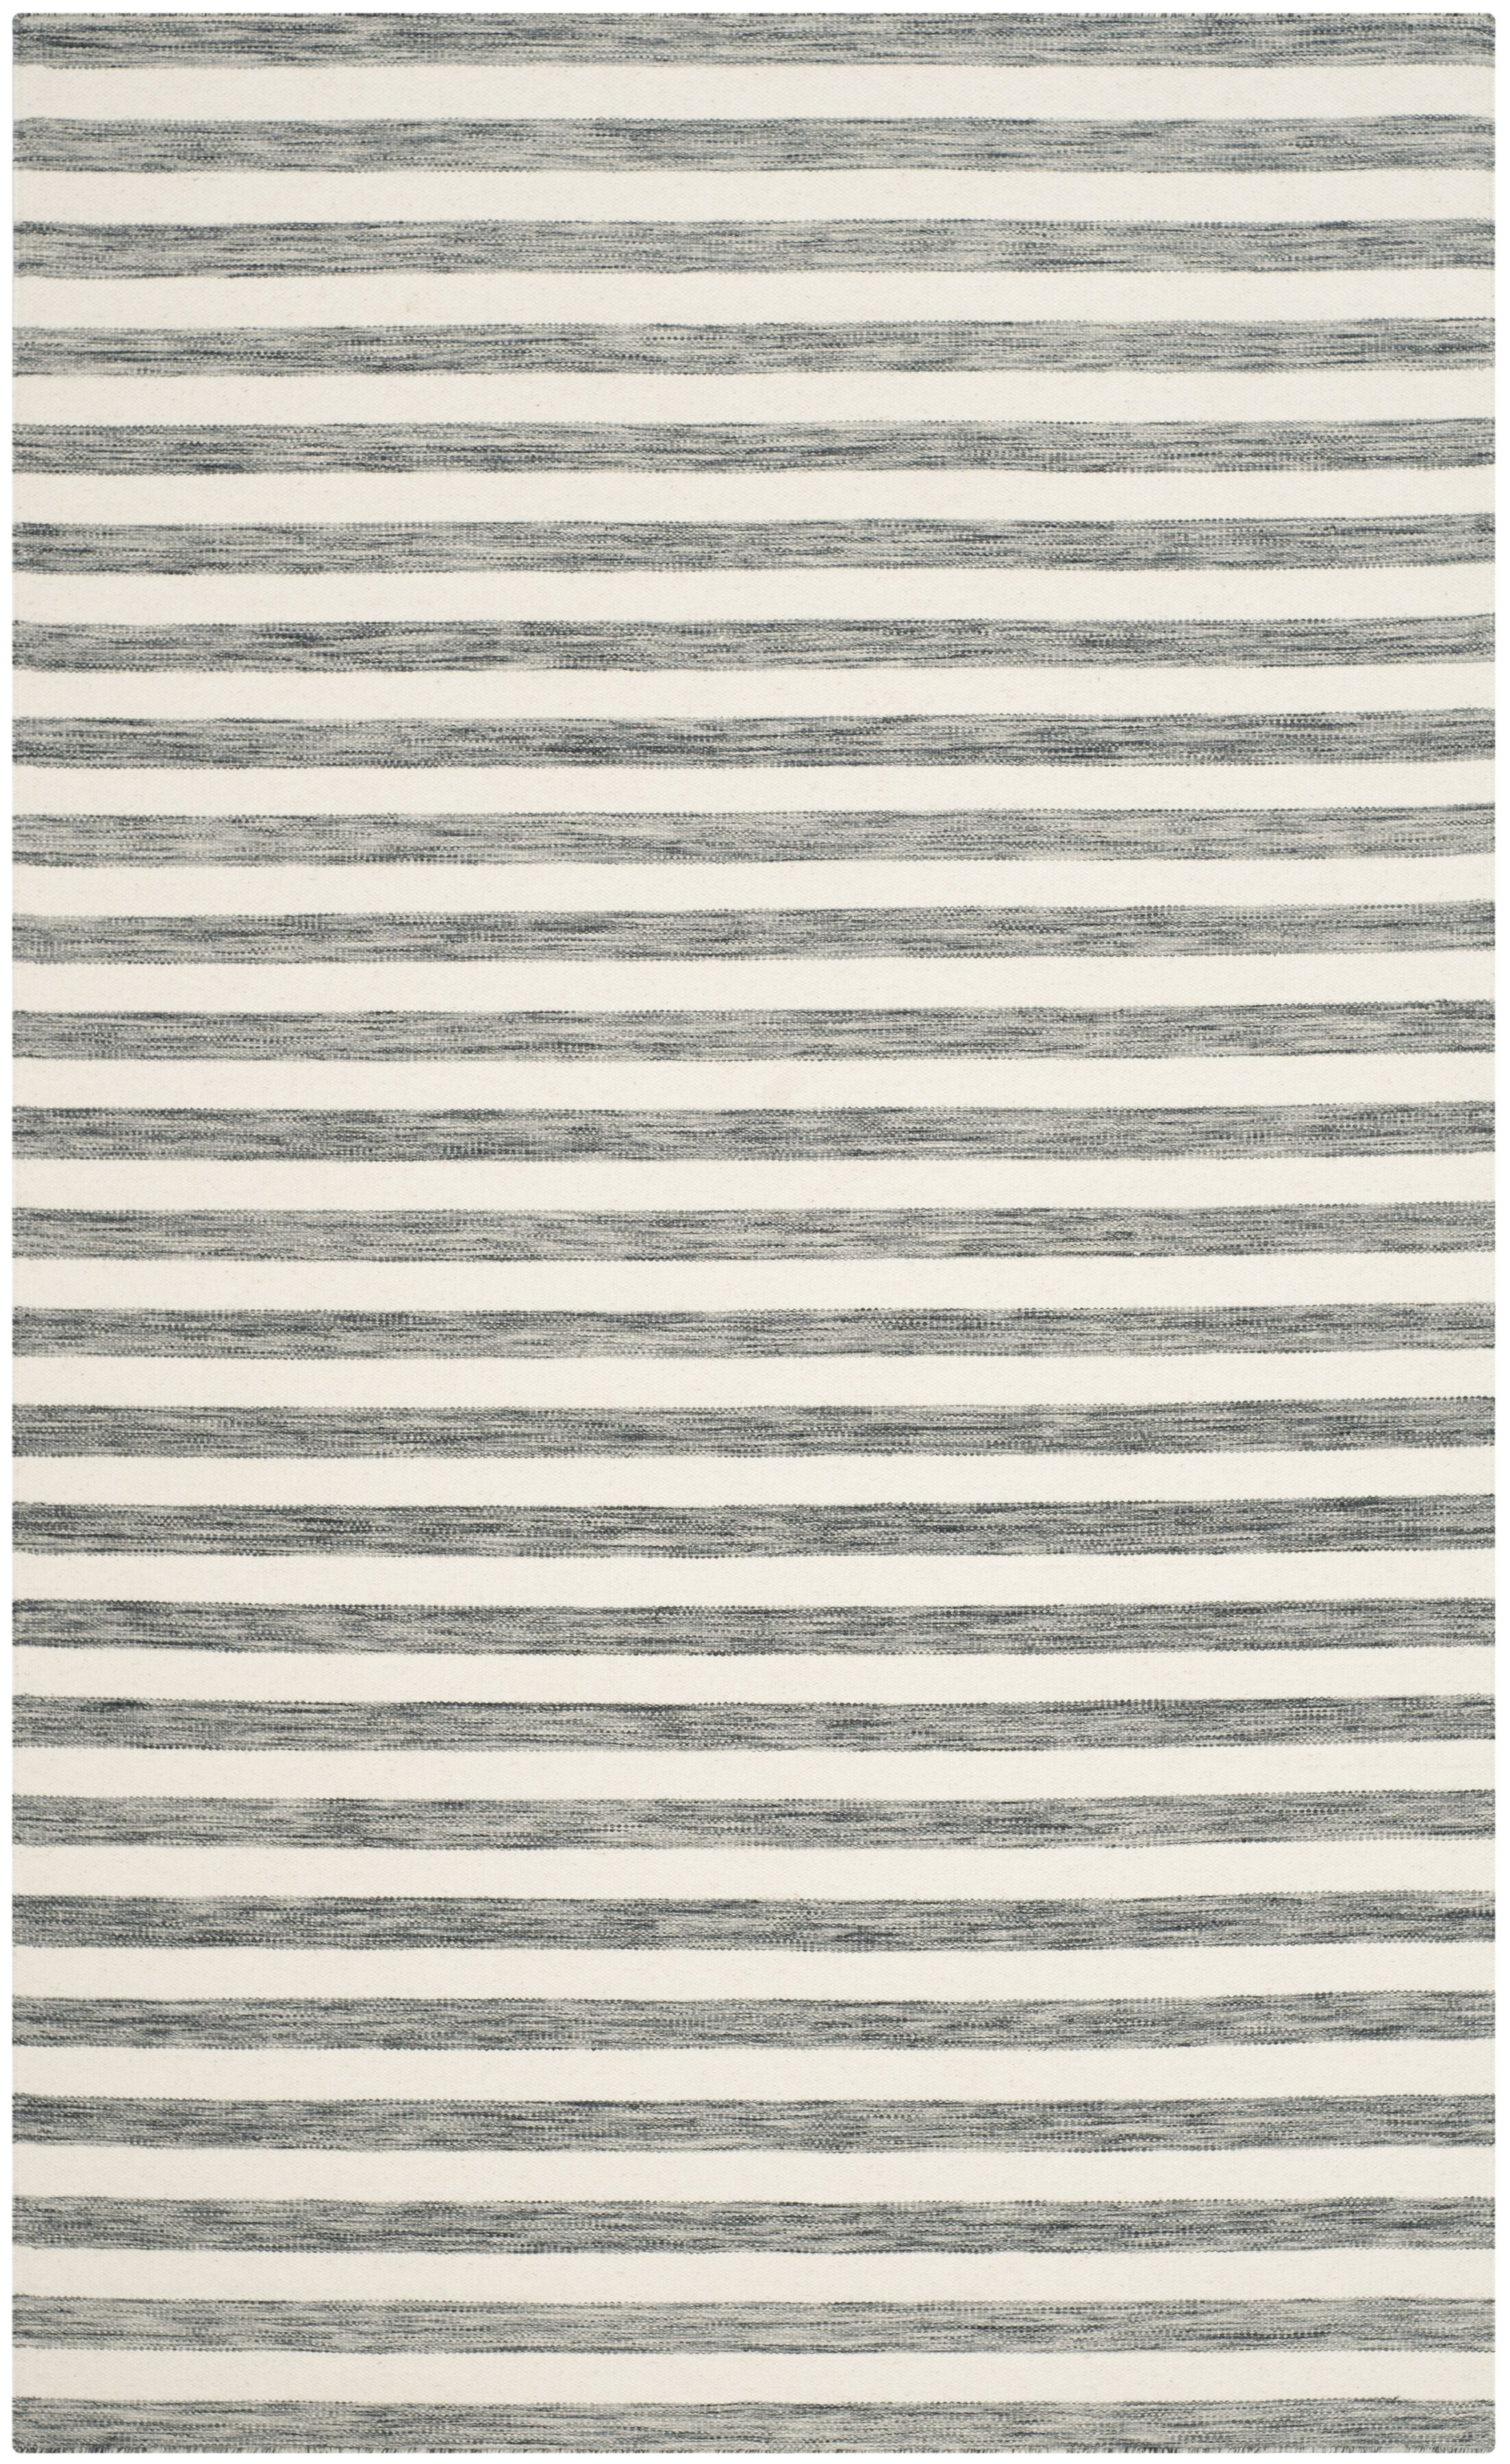 Mahaney Hand-Woven Gray/Ivory Area Rug Rug Size: Rectangle 5' x 8'